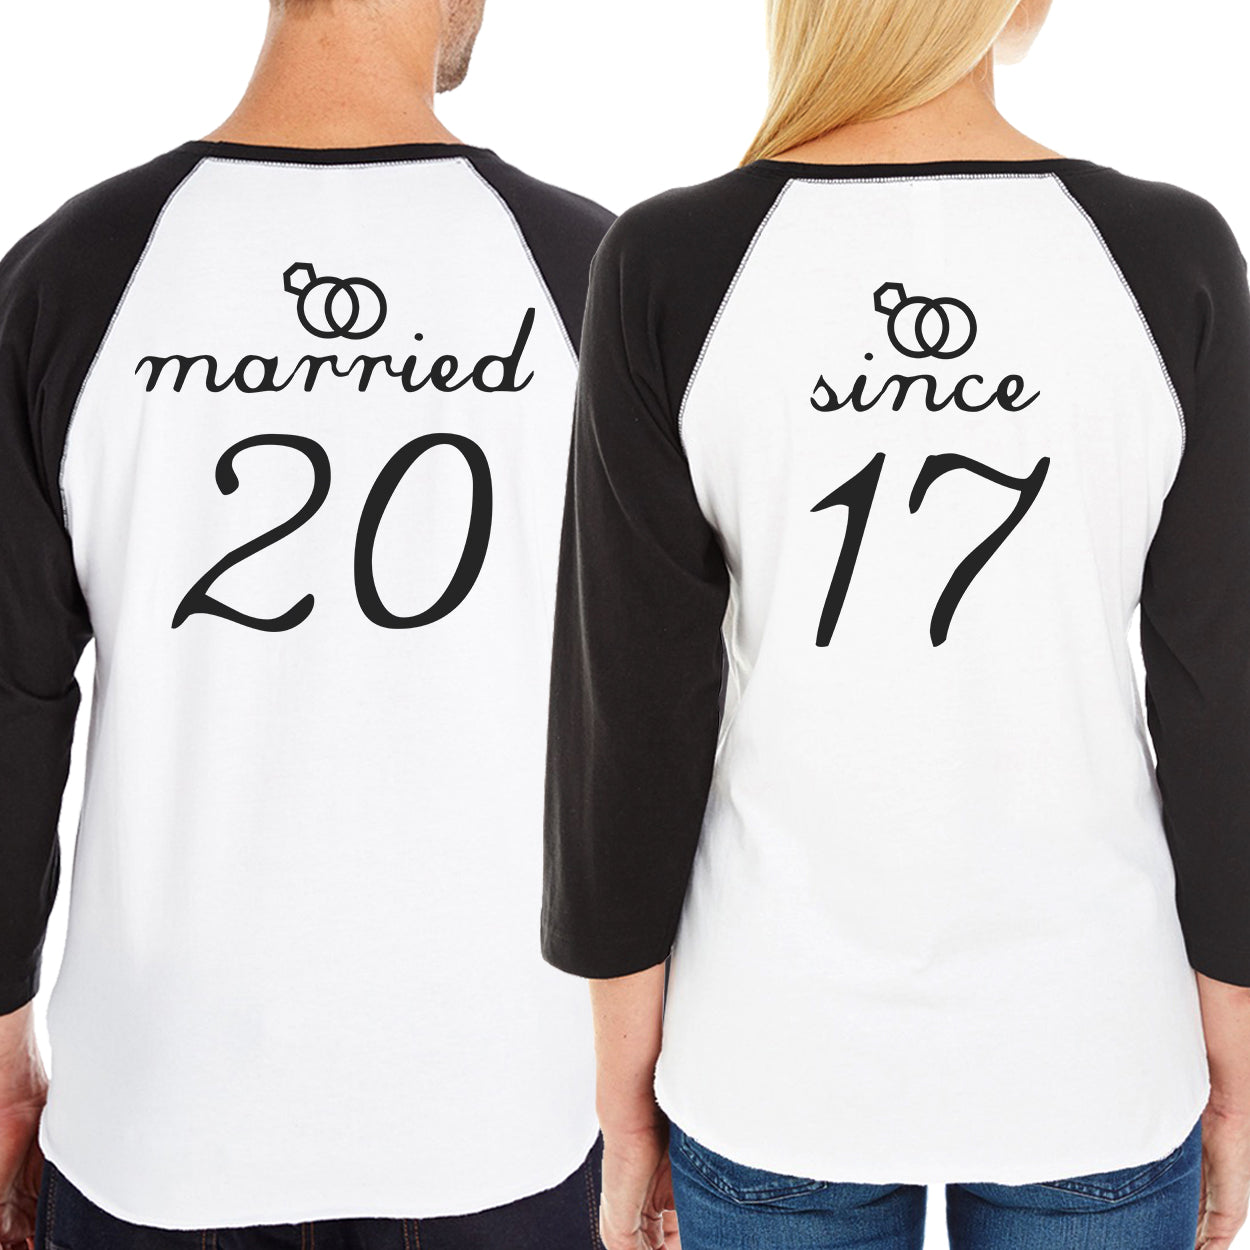 c142244a3 T Shirt Design Ideas For Couples - DREAMWORKS